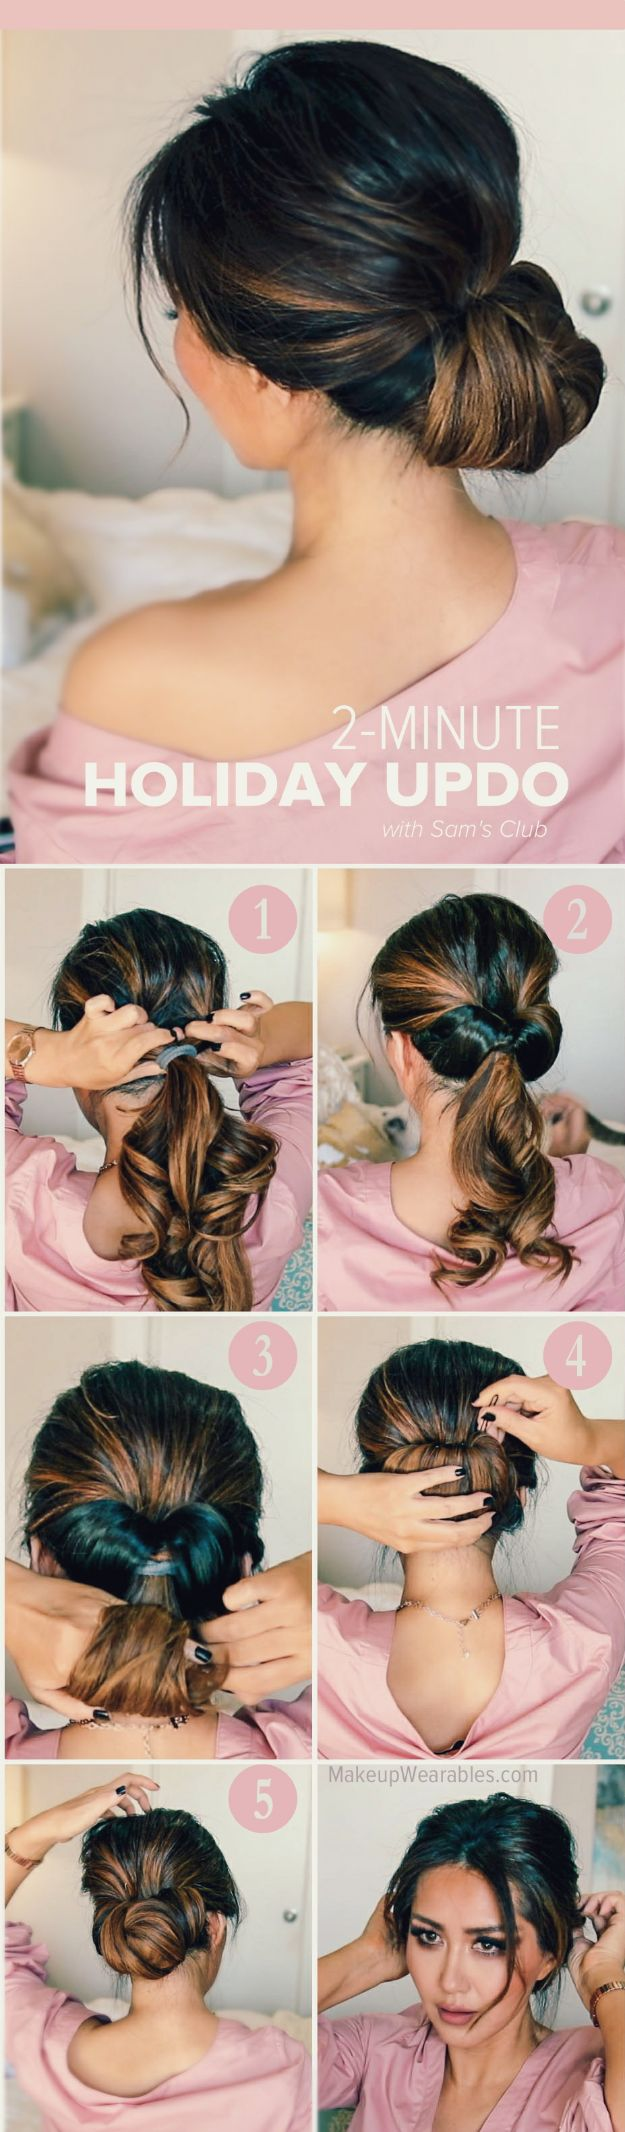 Holiday Hairstyles - Elegant Updo - Cute DIY Hair Styles for Christmas and New Years Eve, Special Occasion - Updos, Braids, Buns, Ponytails, Half Up Half Down Looks #hairstyles